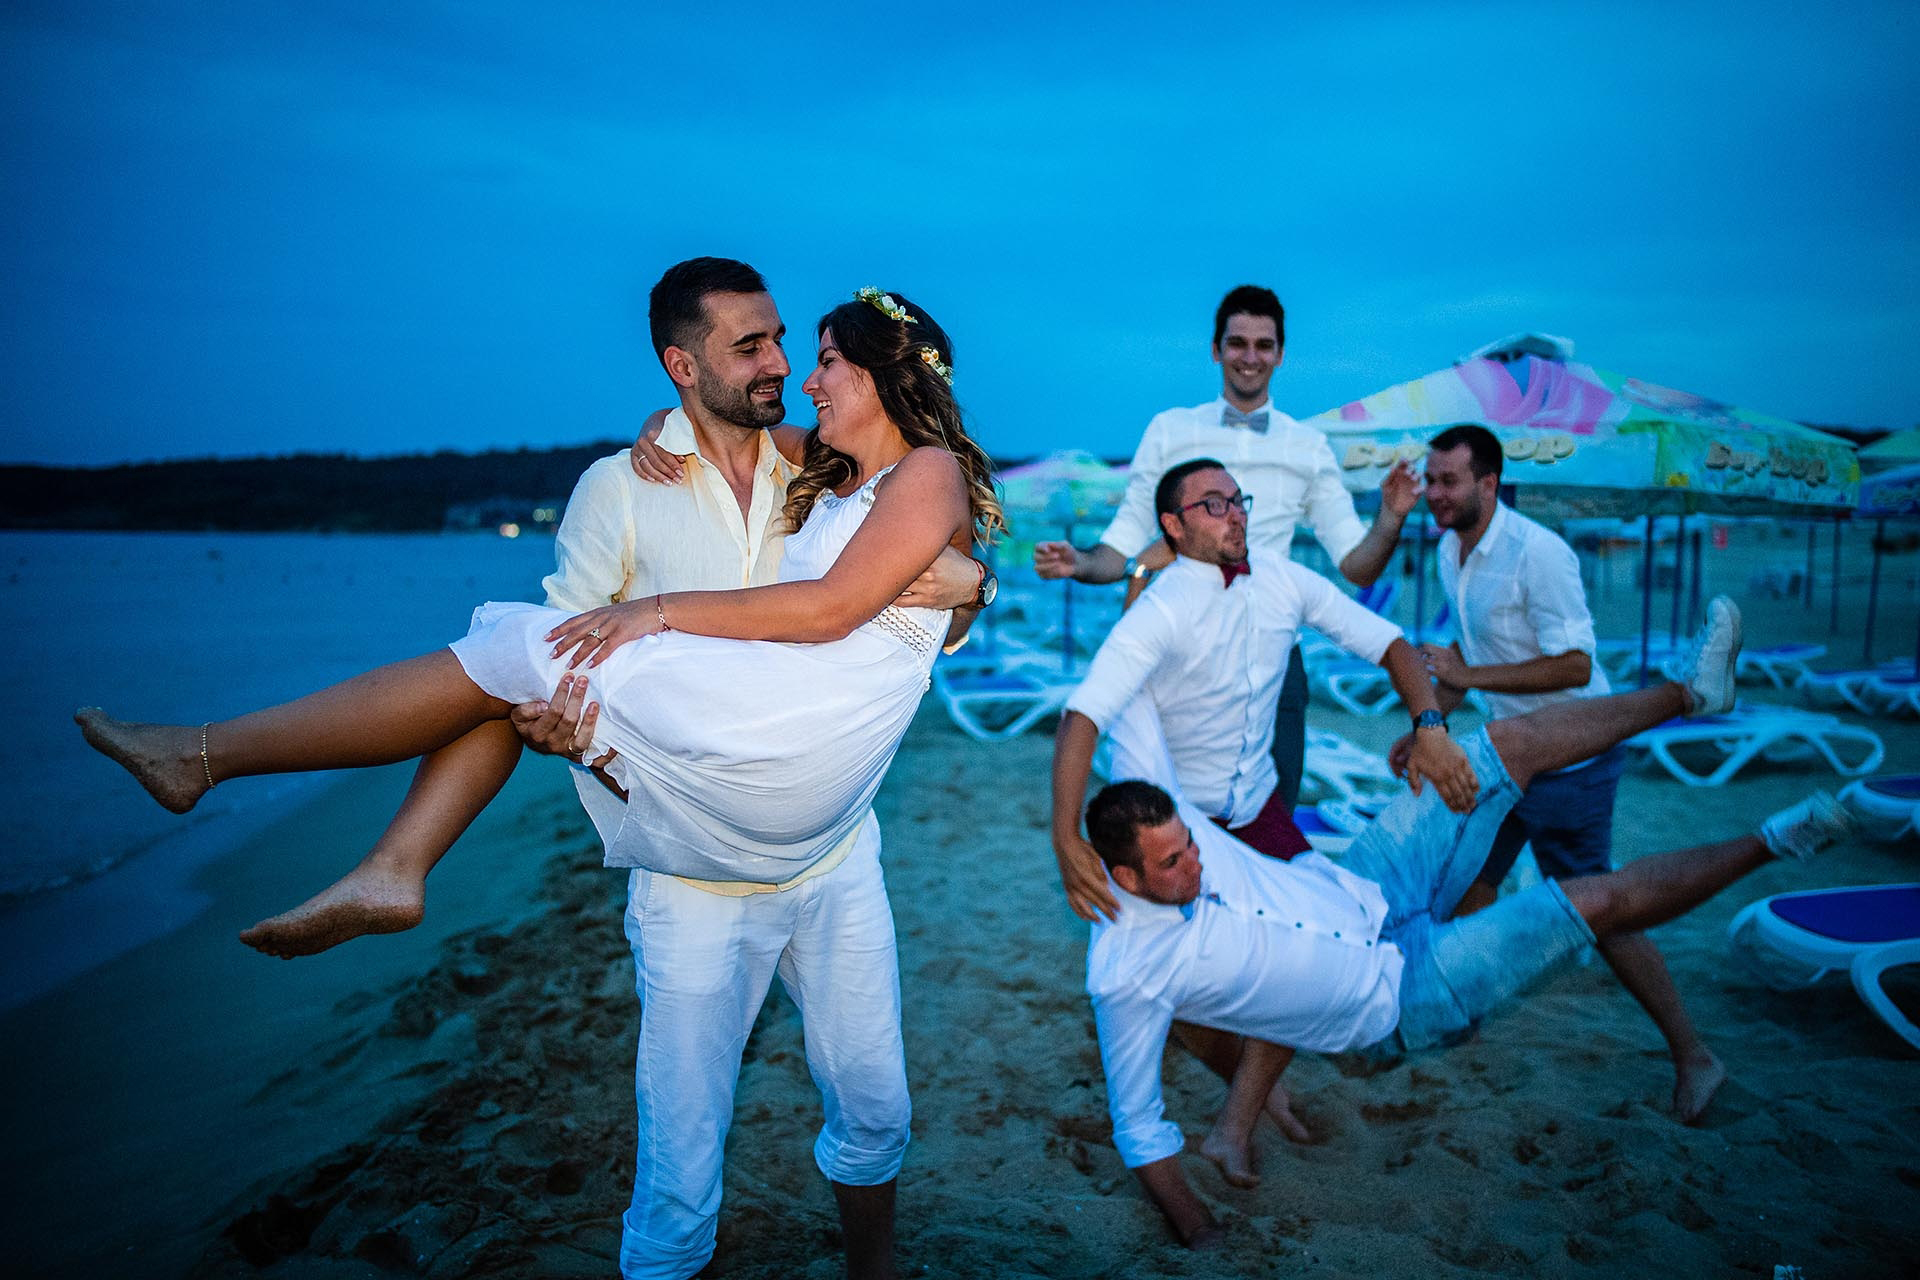 Bulgaria Elopement Wedding Image | The groom sweeps the bride off of her bare feet